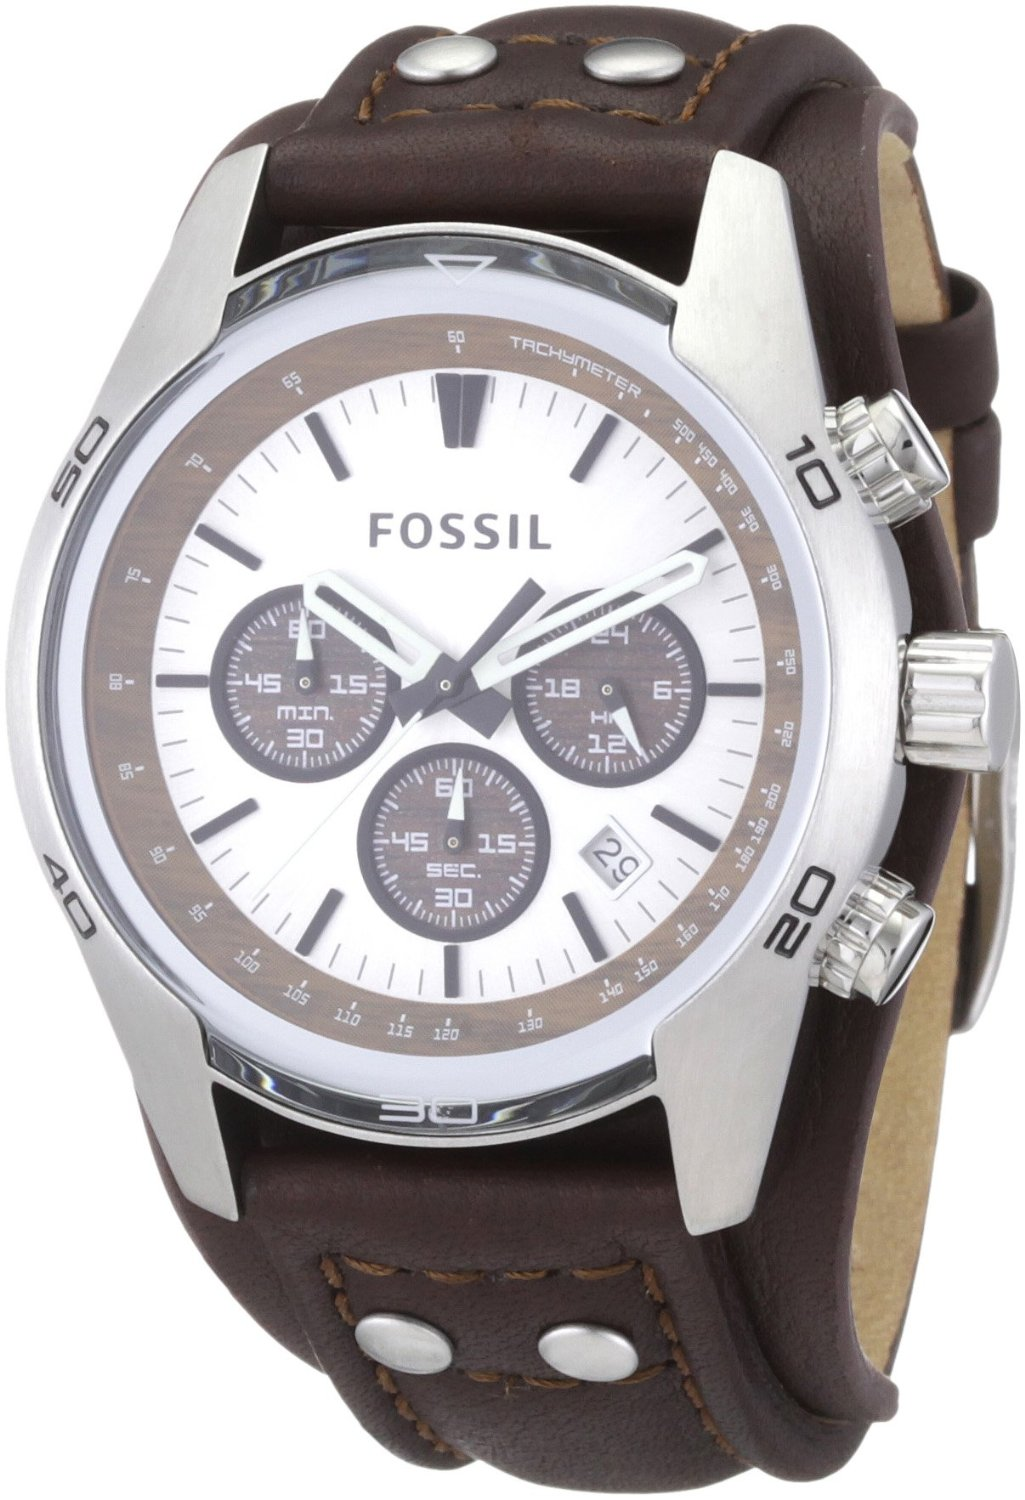 Fossel Watches